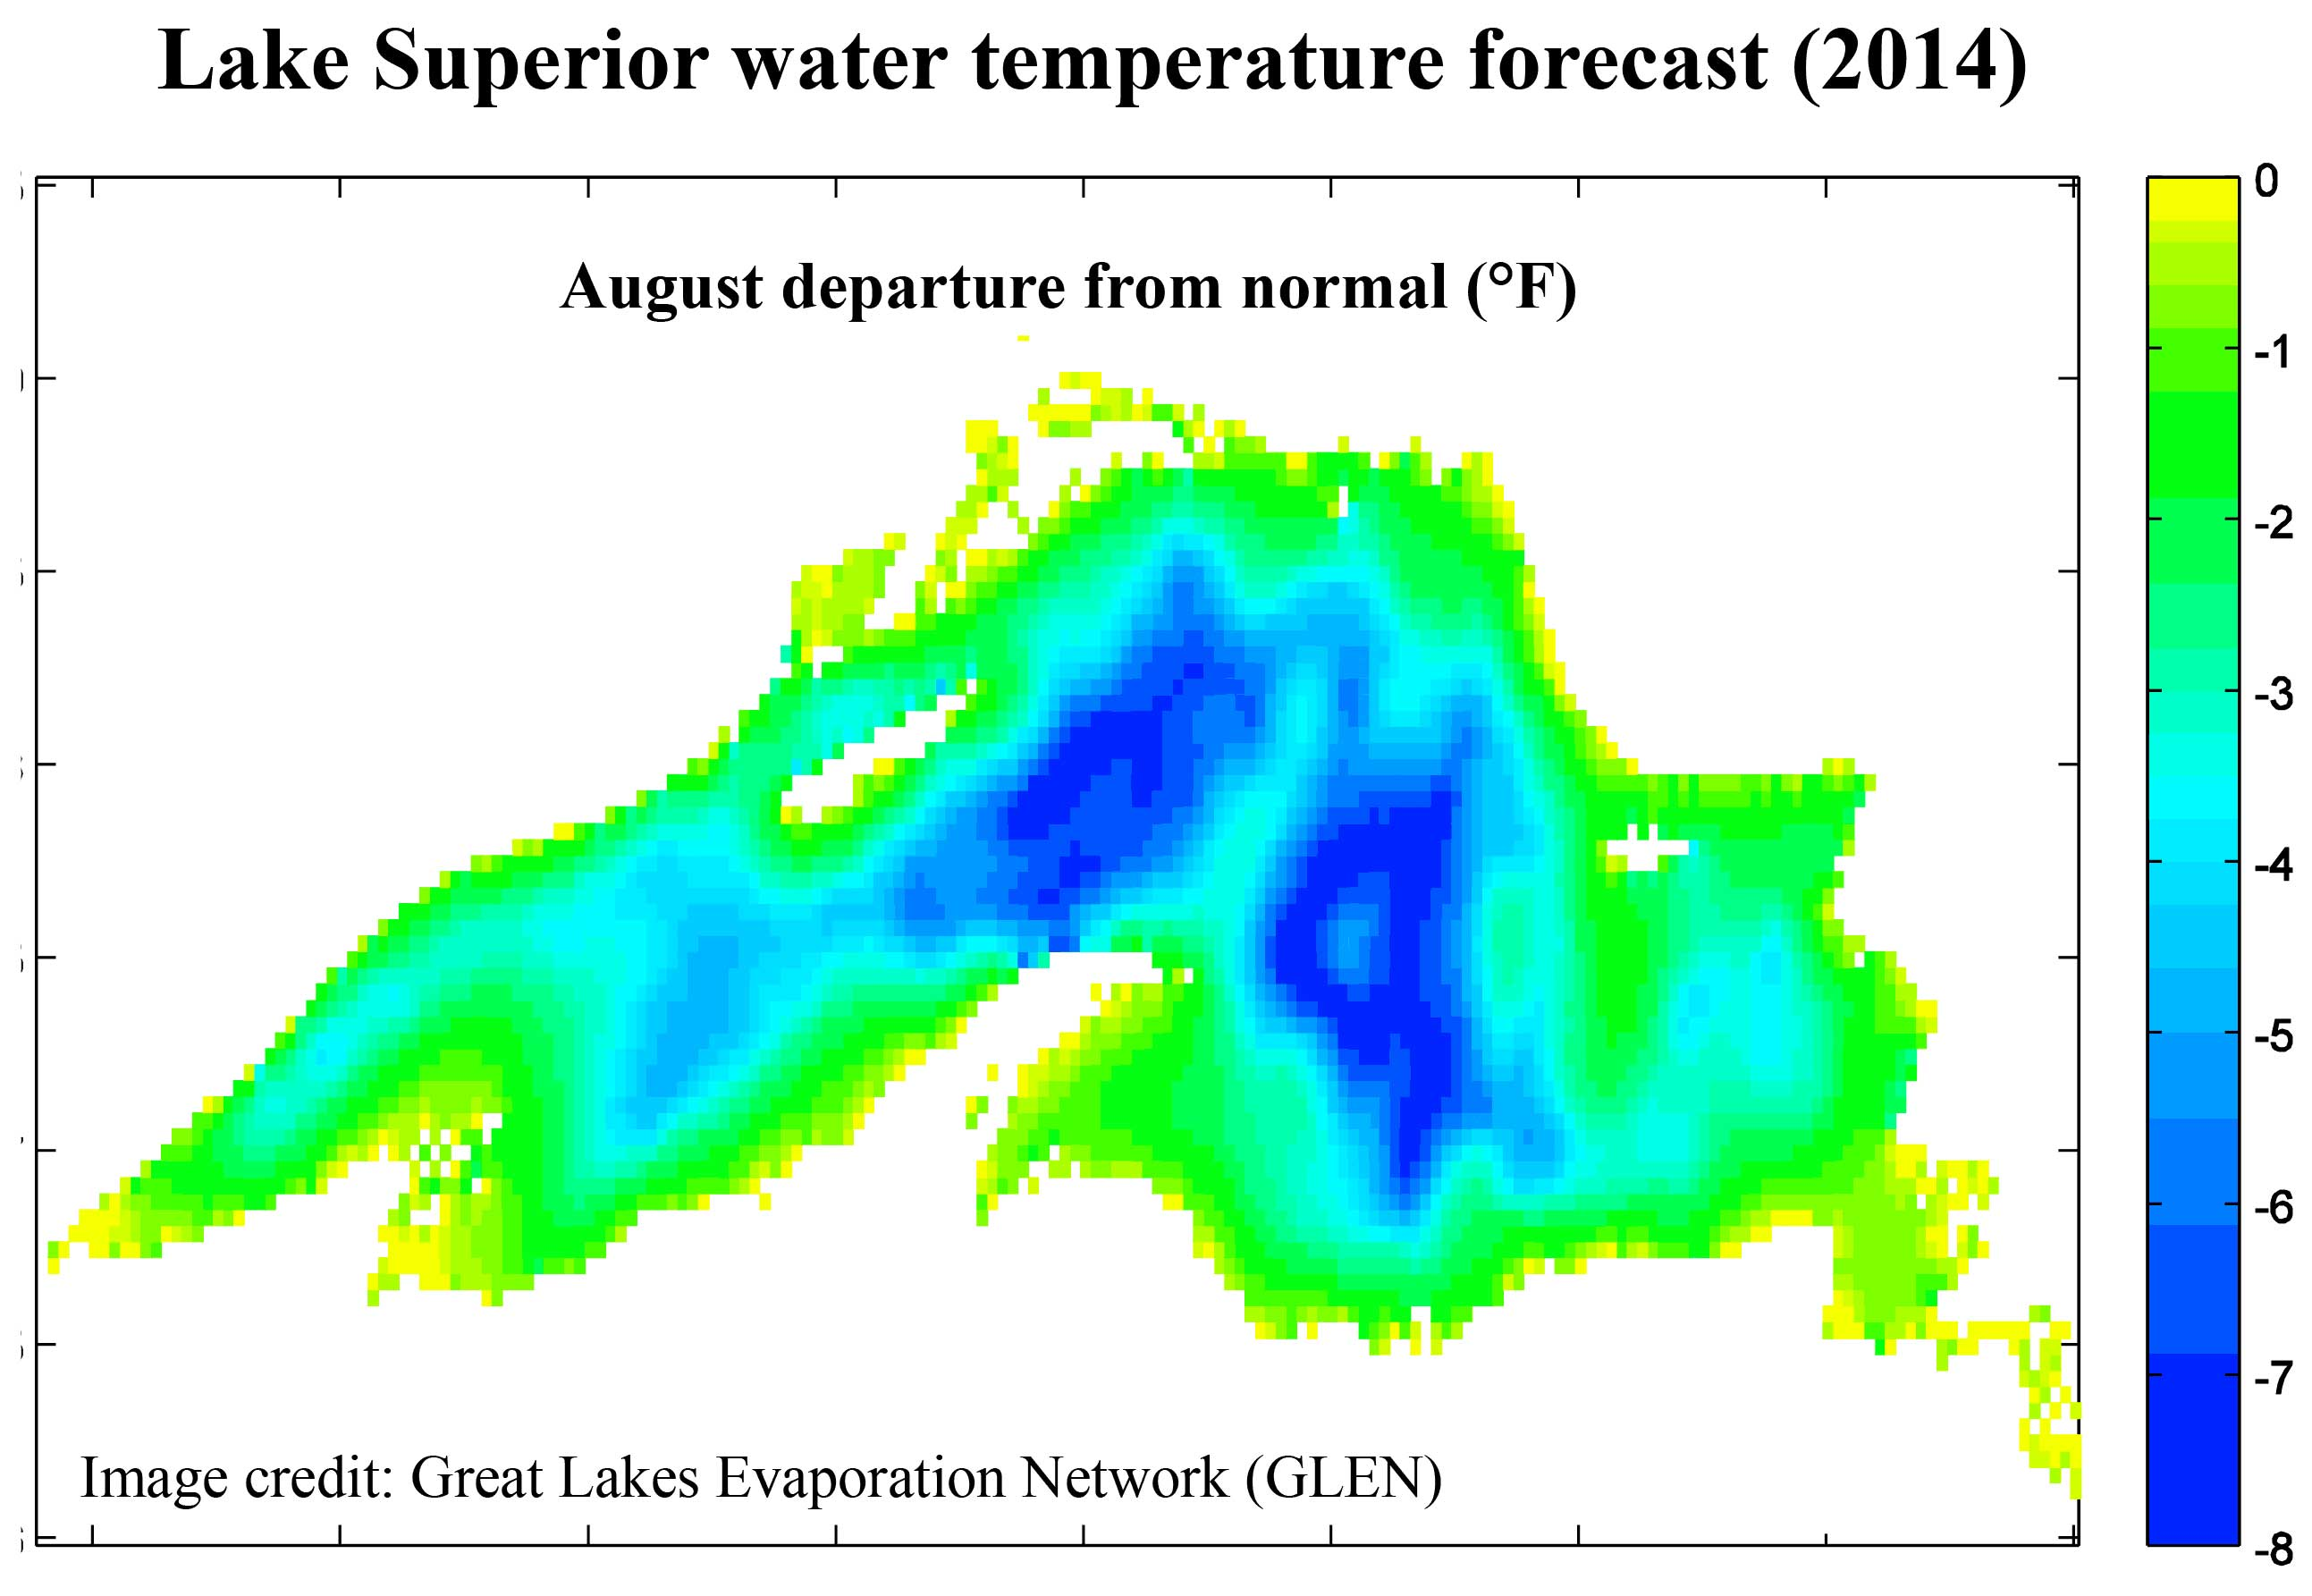 ke Superior water temperature forecast (2014). August departure from normal (°F). Image credit: Great Lakes Evaporation Network (GLEN)